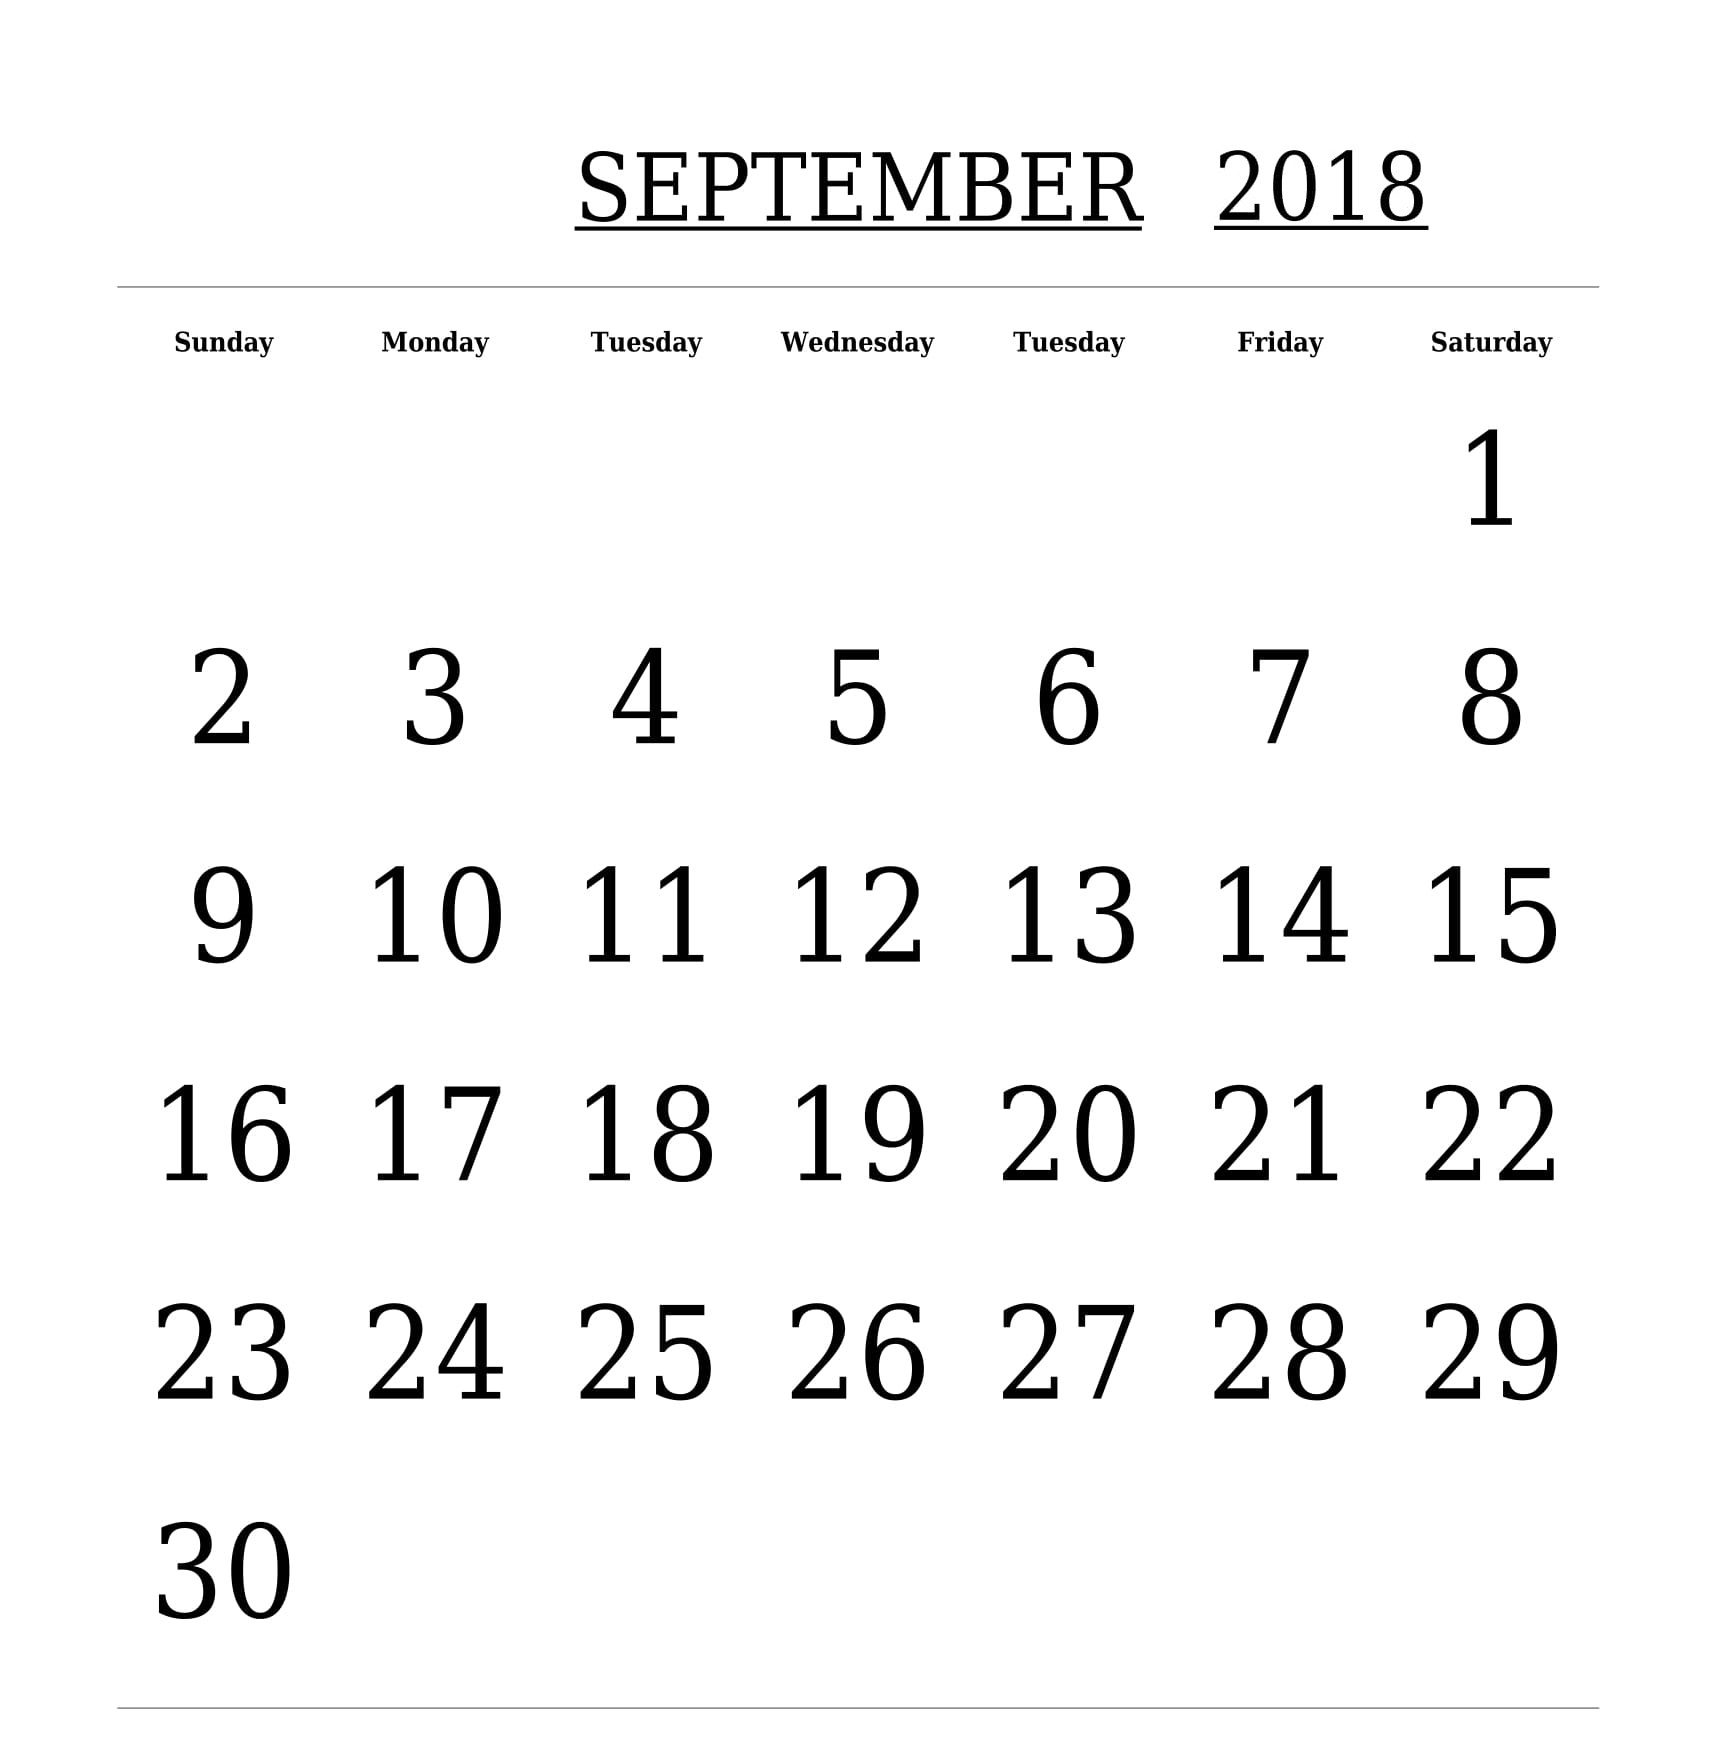 Calendar September 2018 Printable Blank Template